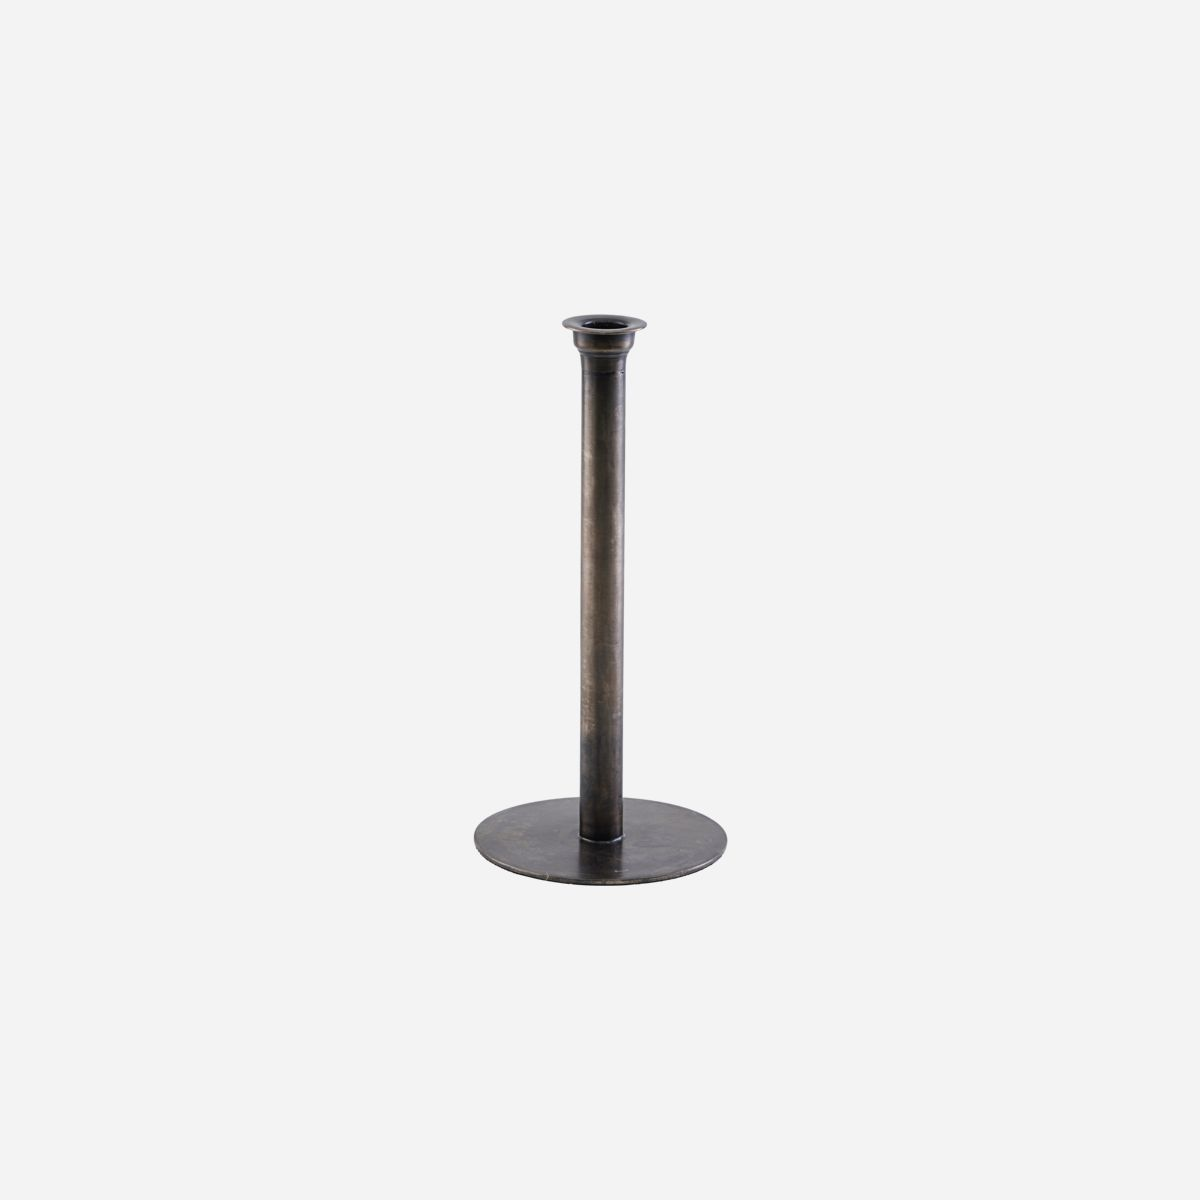 Image of   Candle stand, Latuna, Antique copper, (candle: 201210005), Finish/Colour may vary